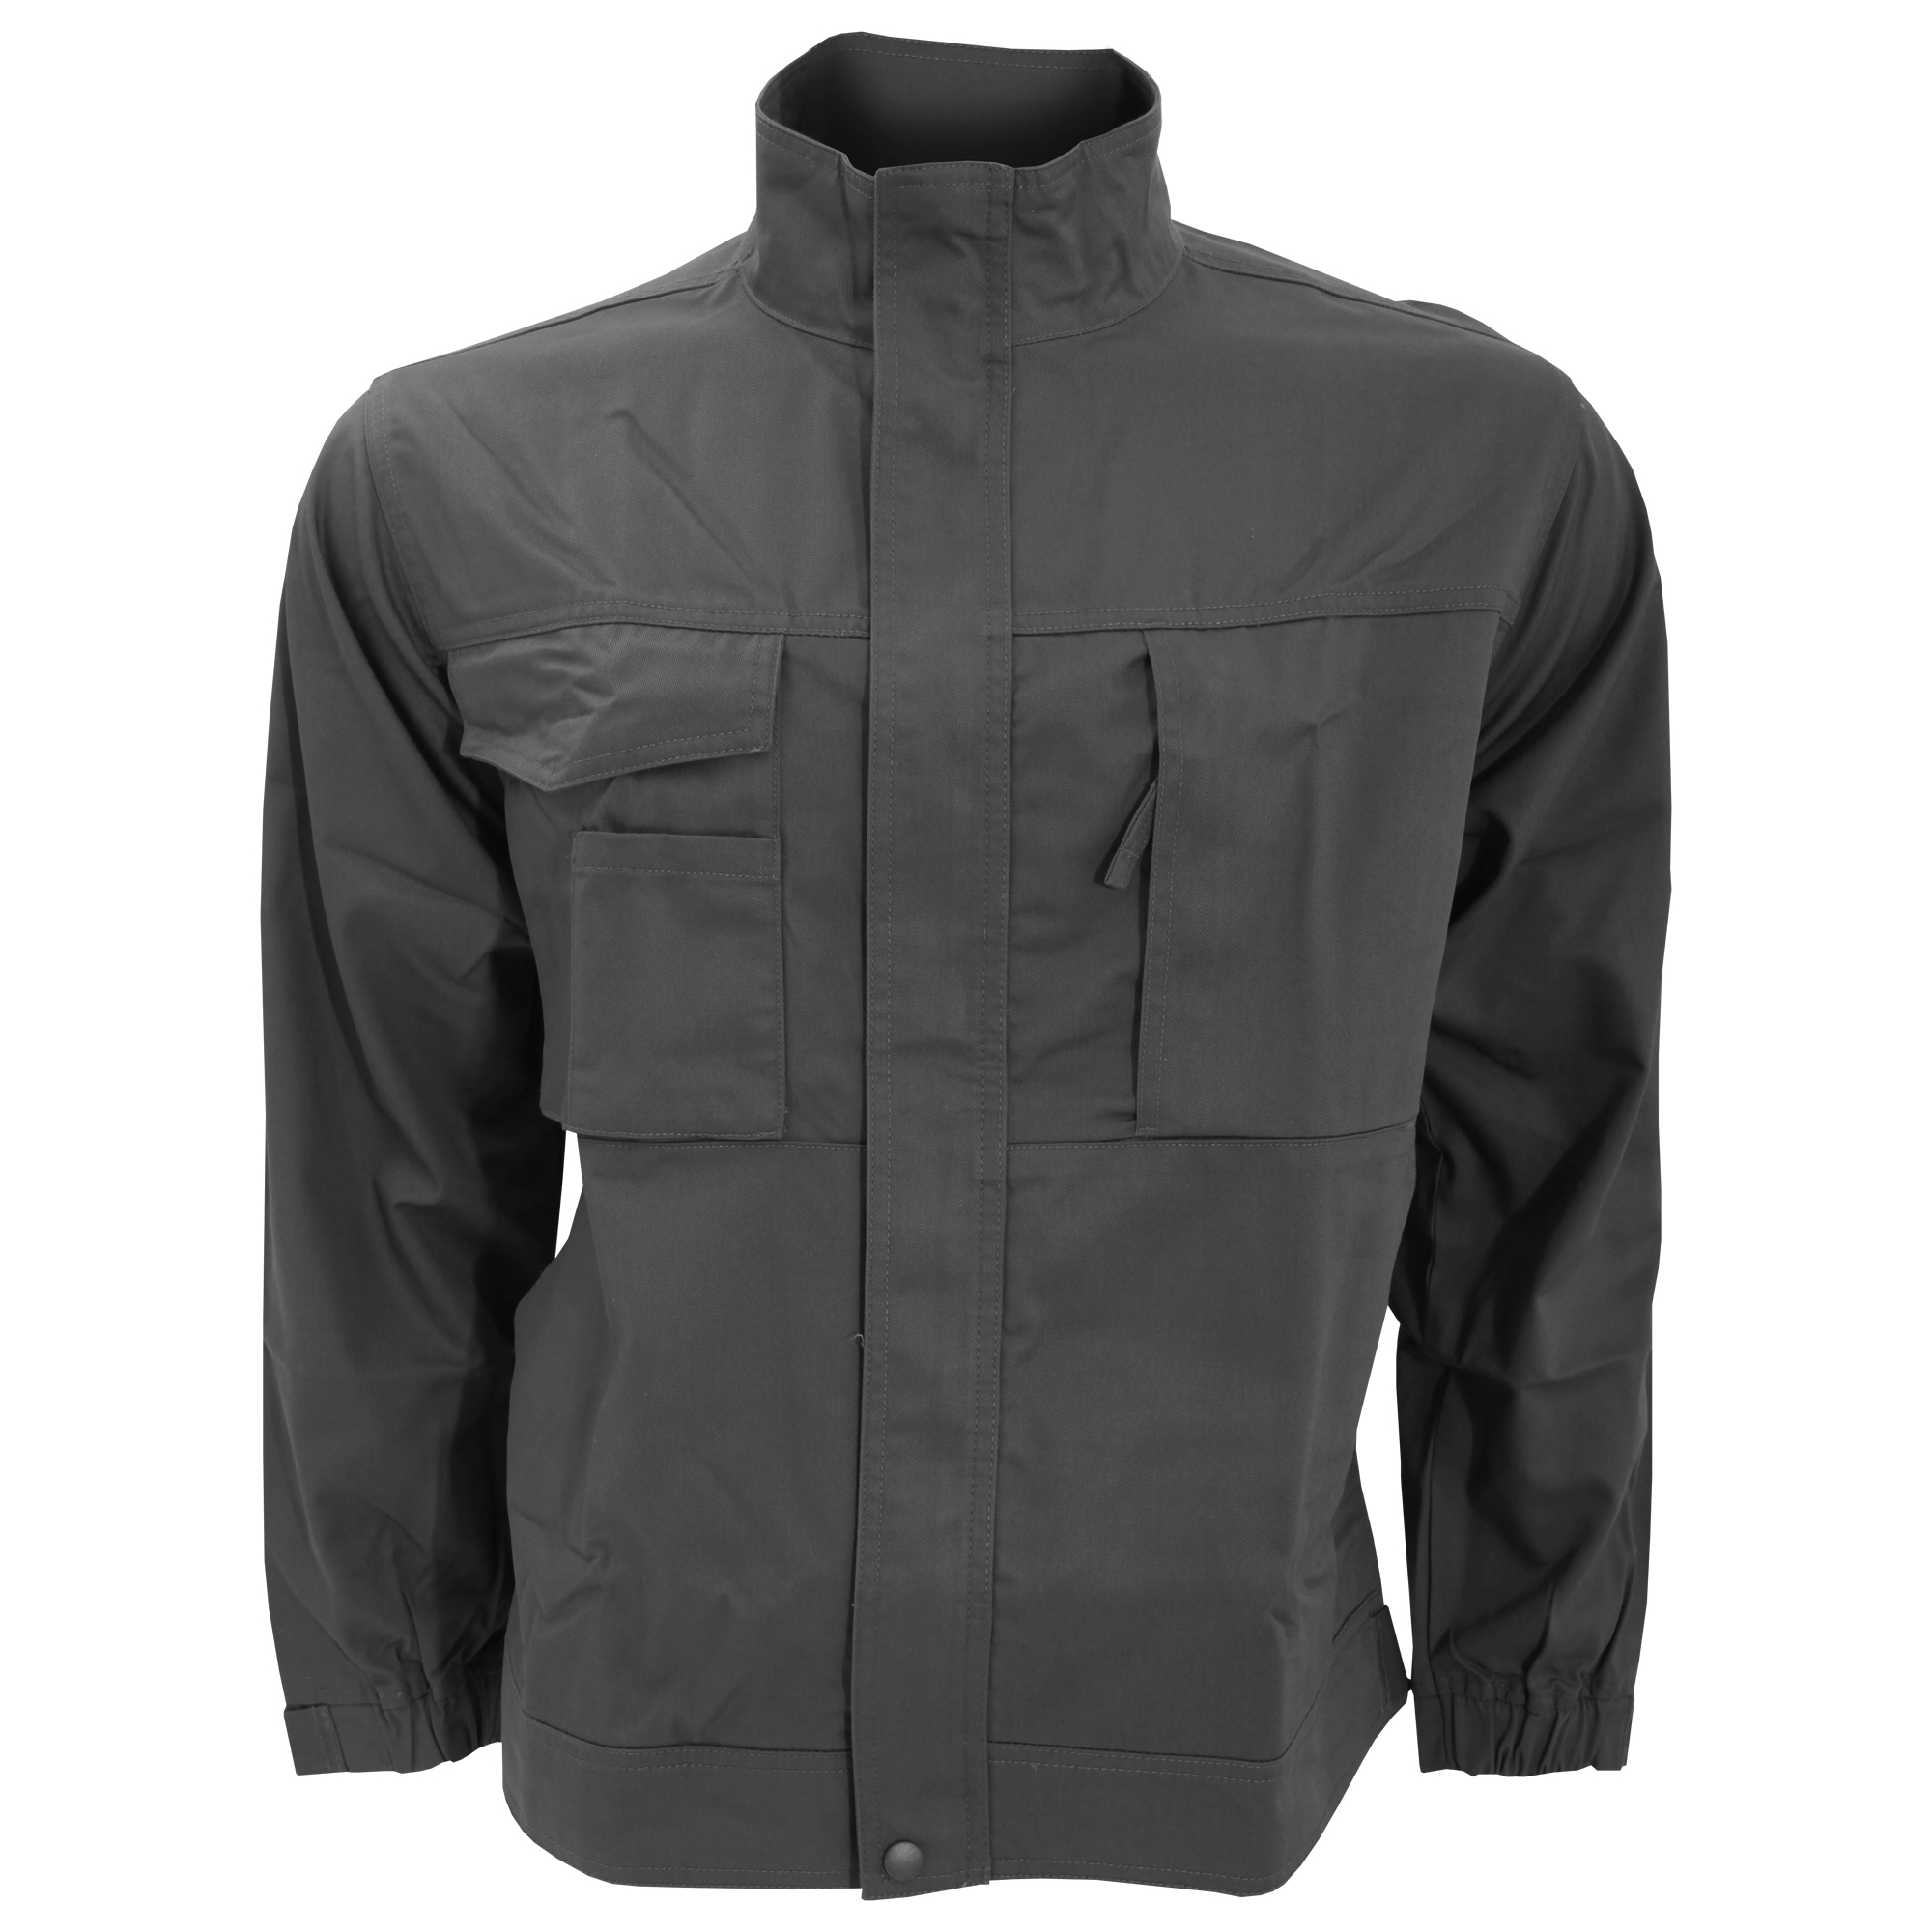 a0f152be1 Details about Russell Workwear Mens Plain Casual Zip up Twill Work Jacket  /Coat (6 (BC1047)